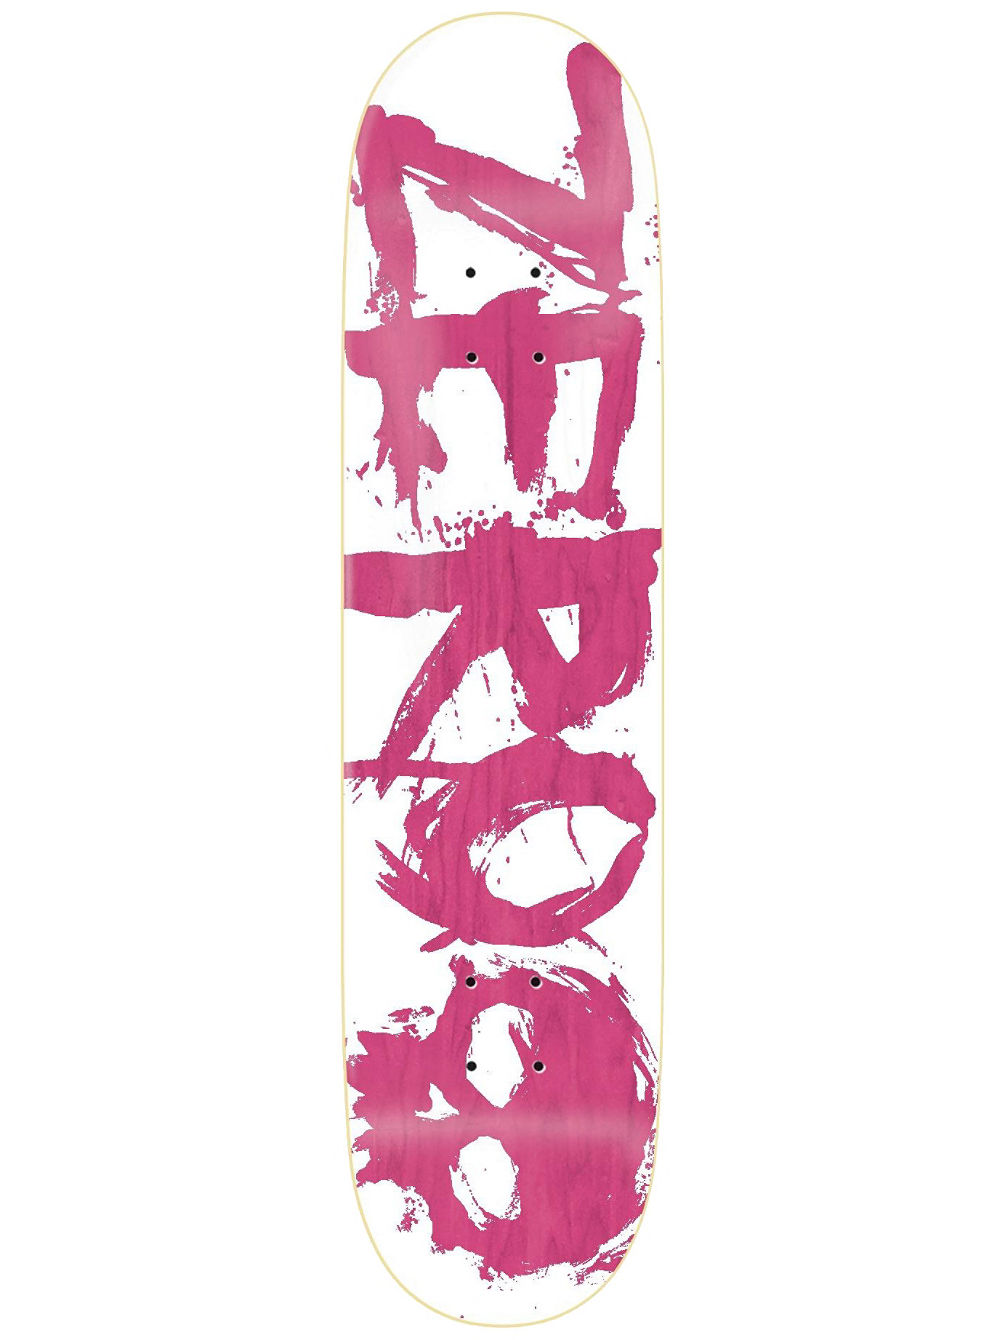 "Blood Mag Pr Po 8.25"" Skate Deck"